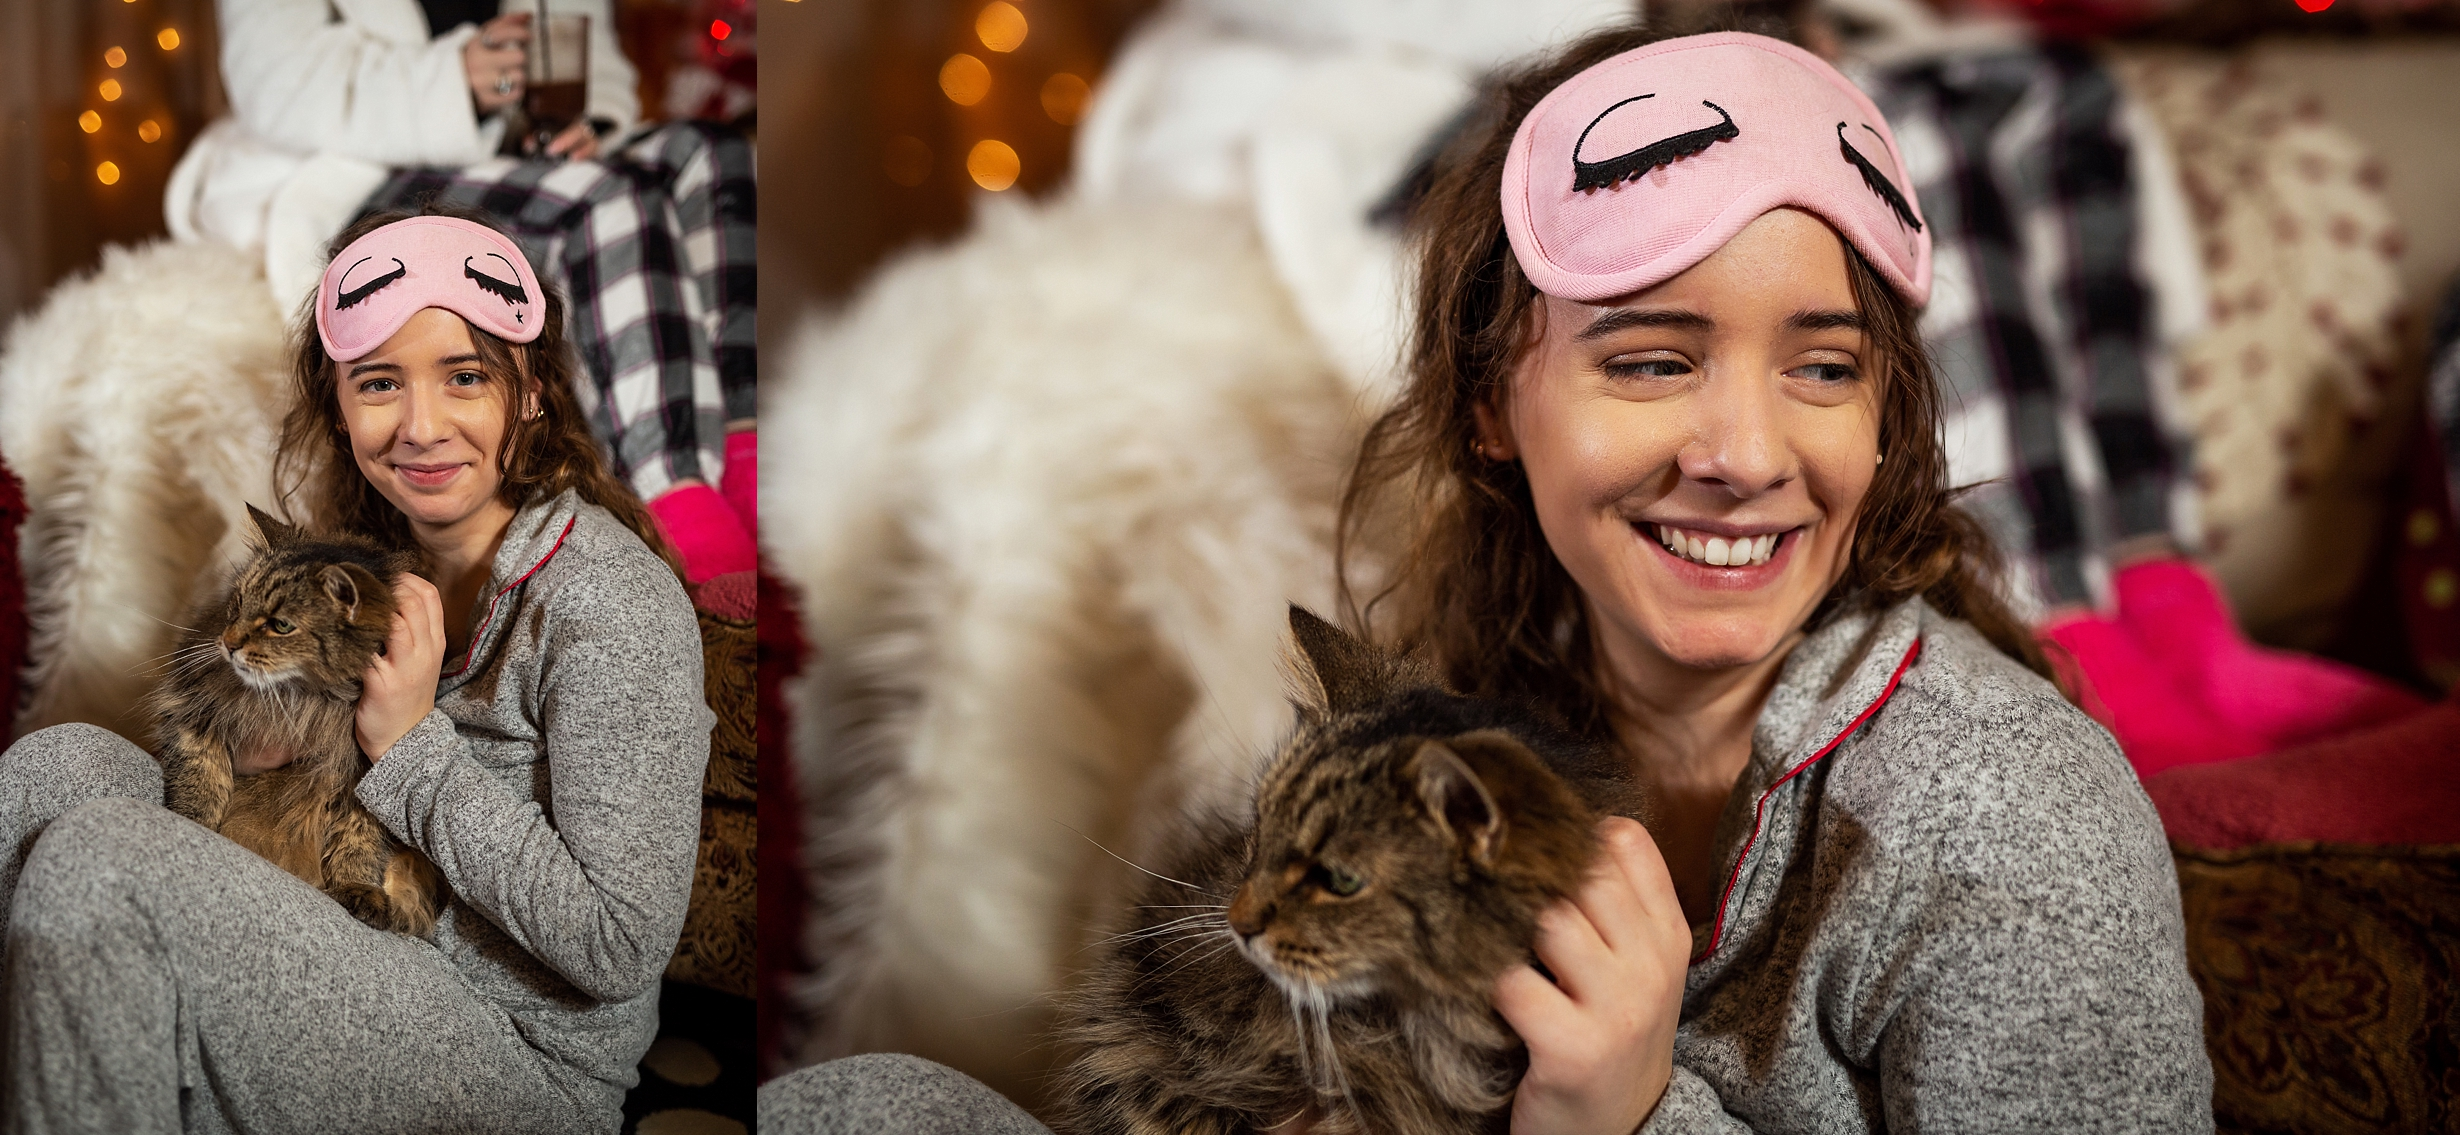 Marissa Tunstall cuddling with Bella the cat at 2019 VIP Representative Christmas party/photoshoot